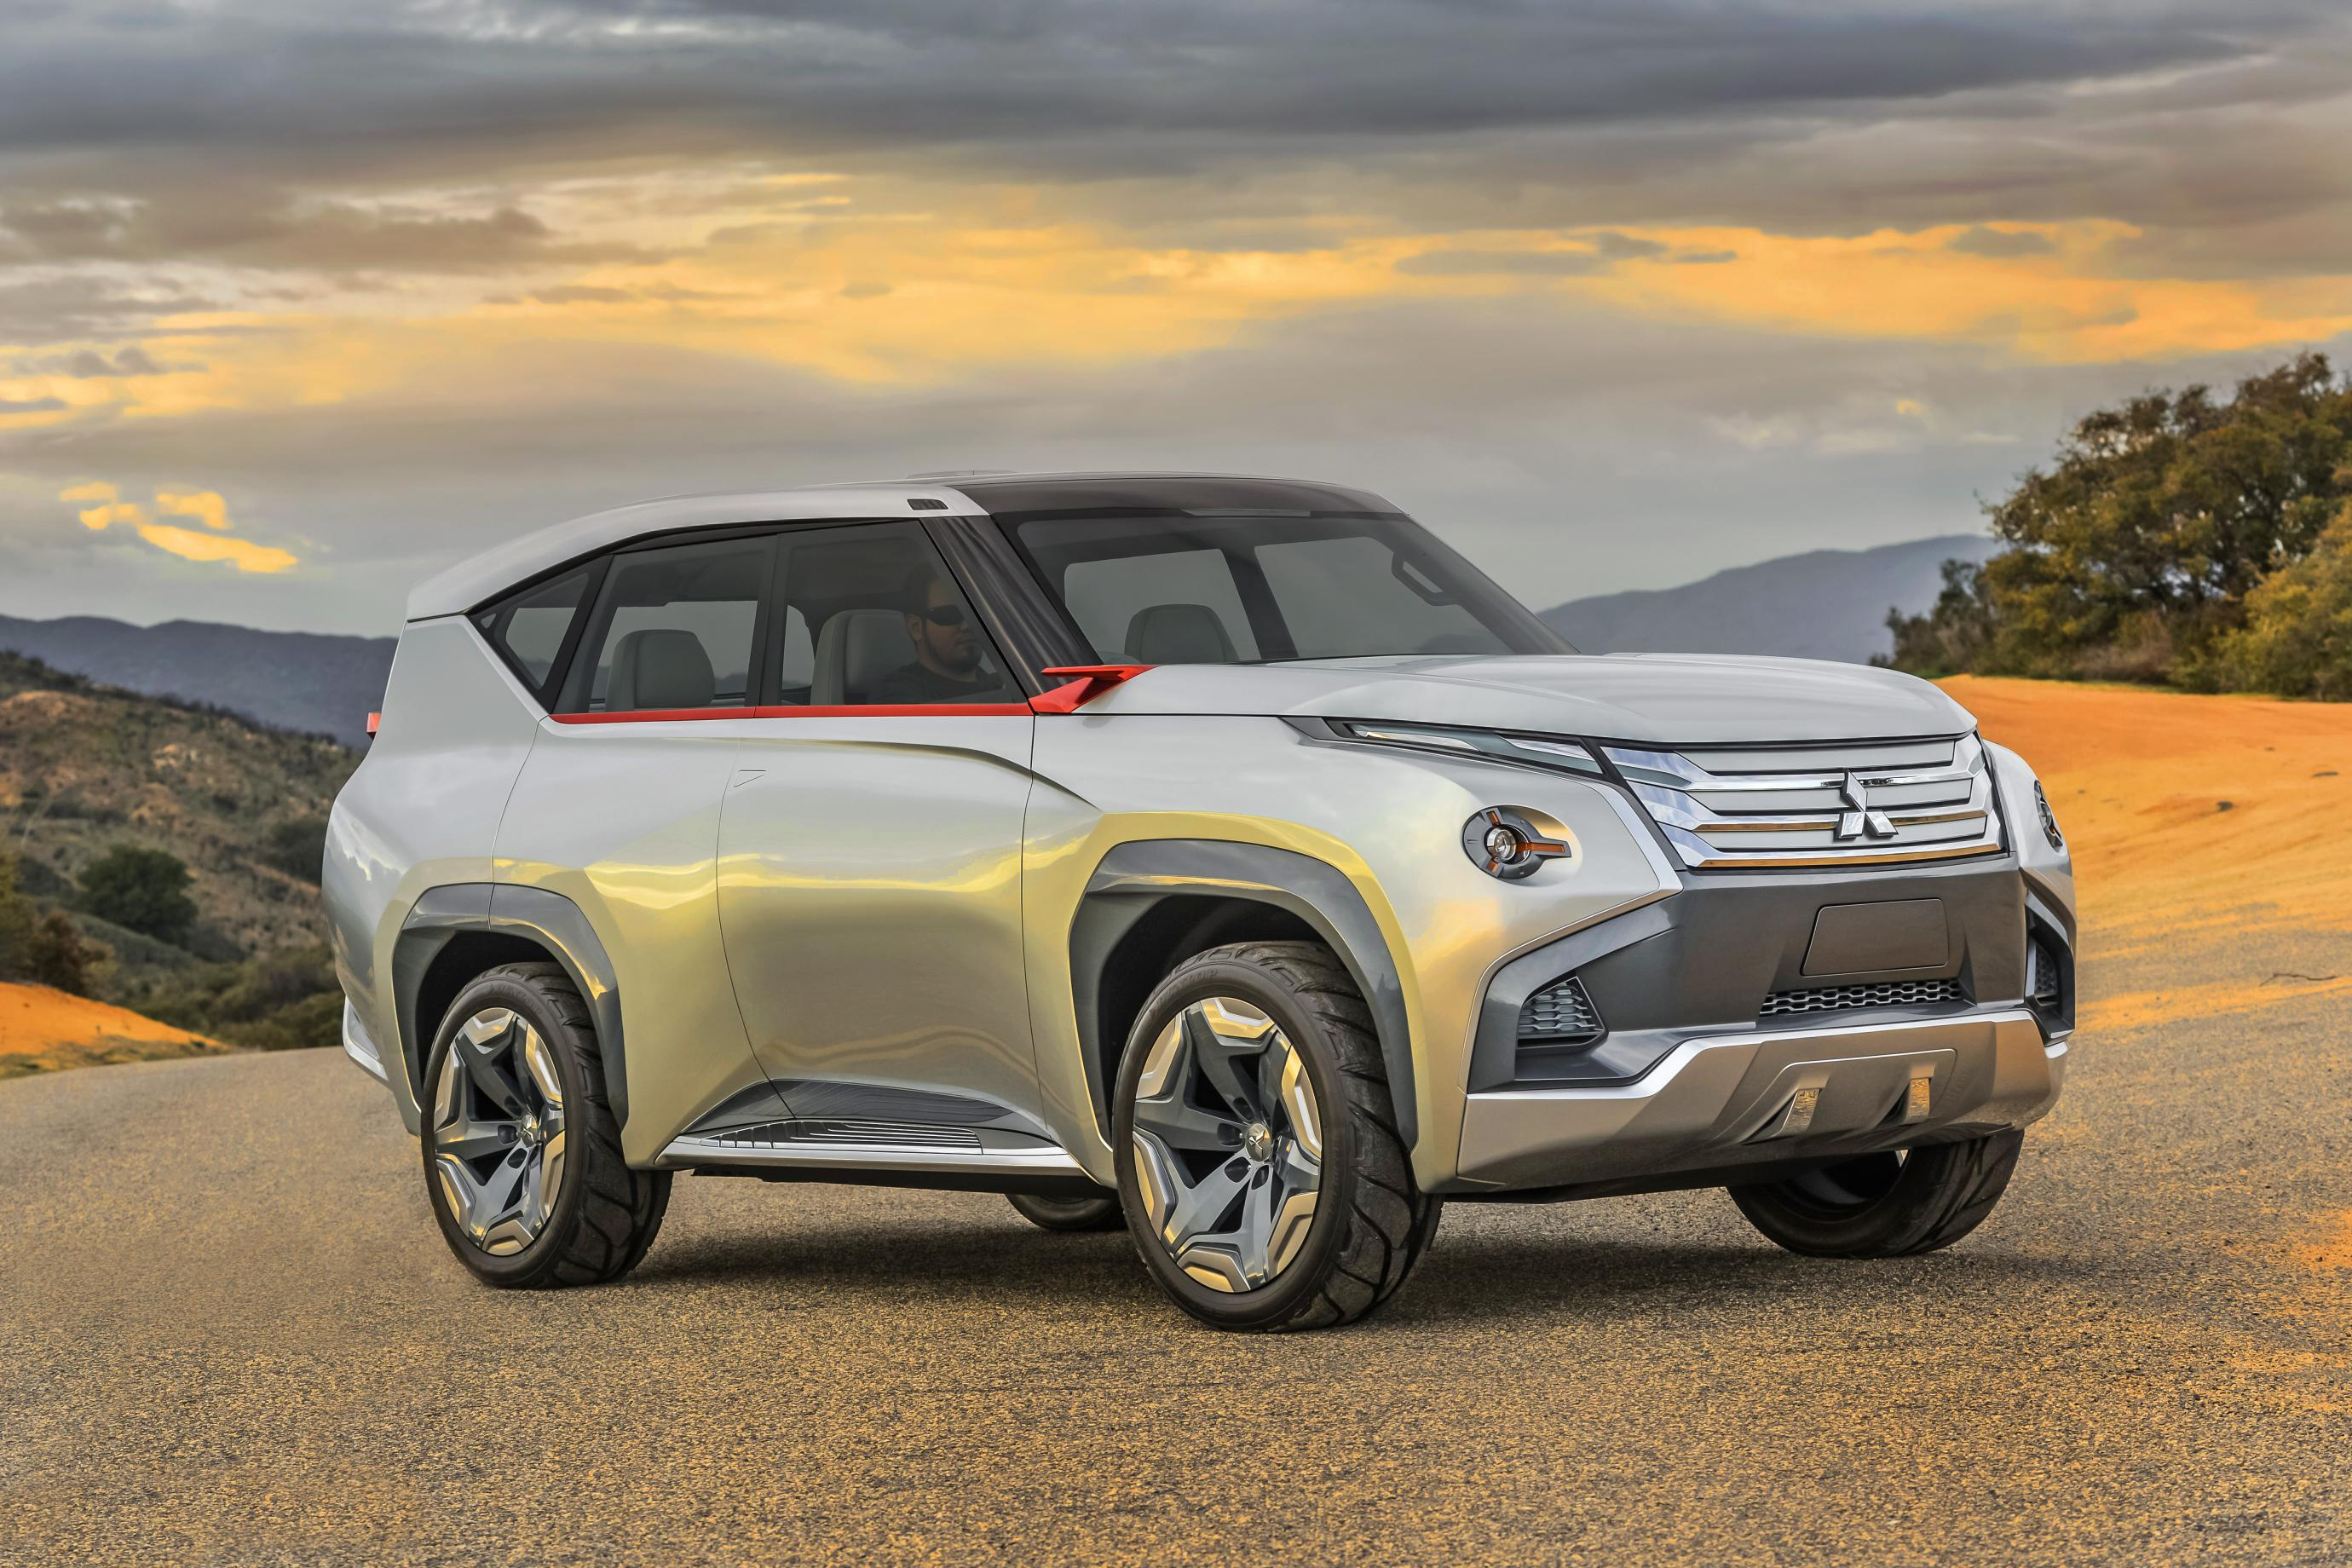 MITSUBISHI MOTORS CONCEPT GC-PHEV MAKES NORTH AMERICAN DEBUT AT THE CHICAGO AUTO SHOW